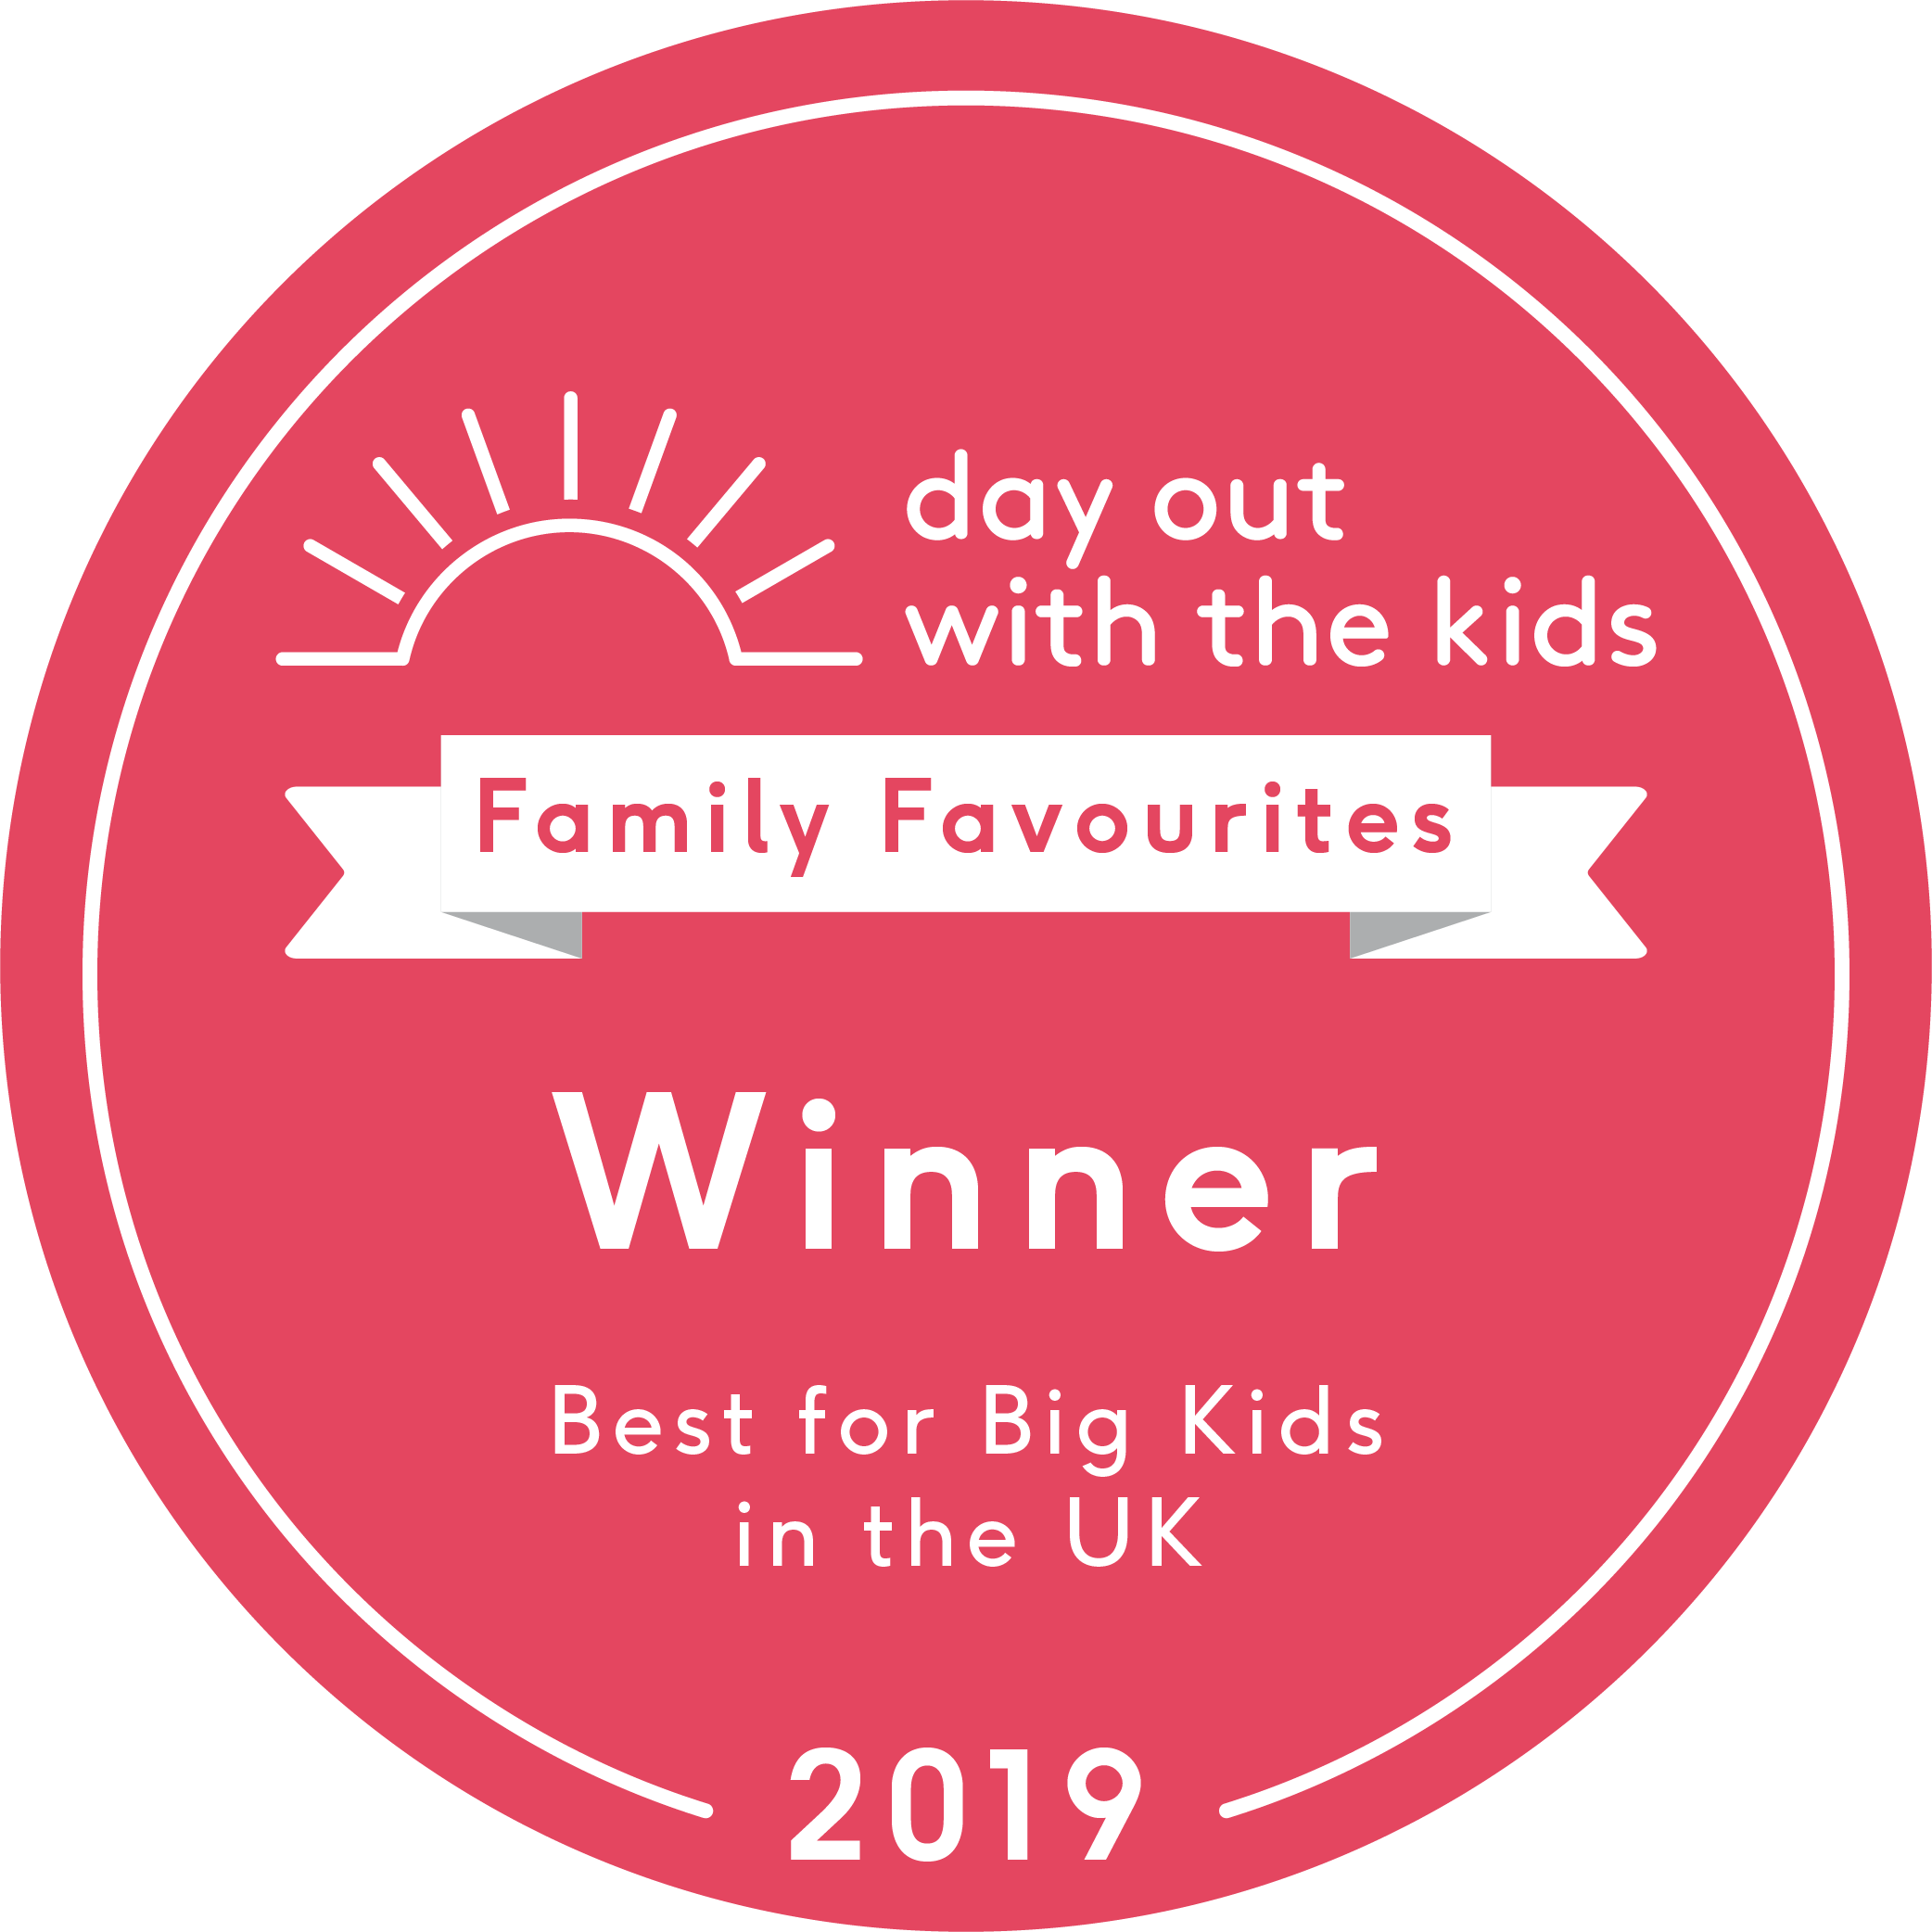 Best for Big Kids in the UK 2019